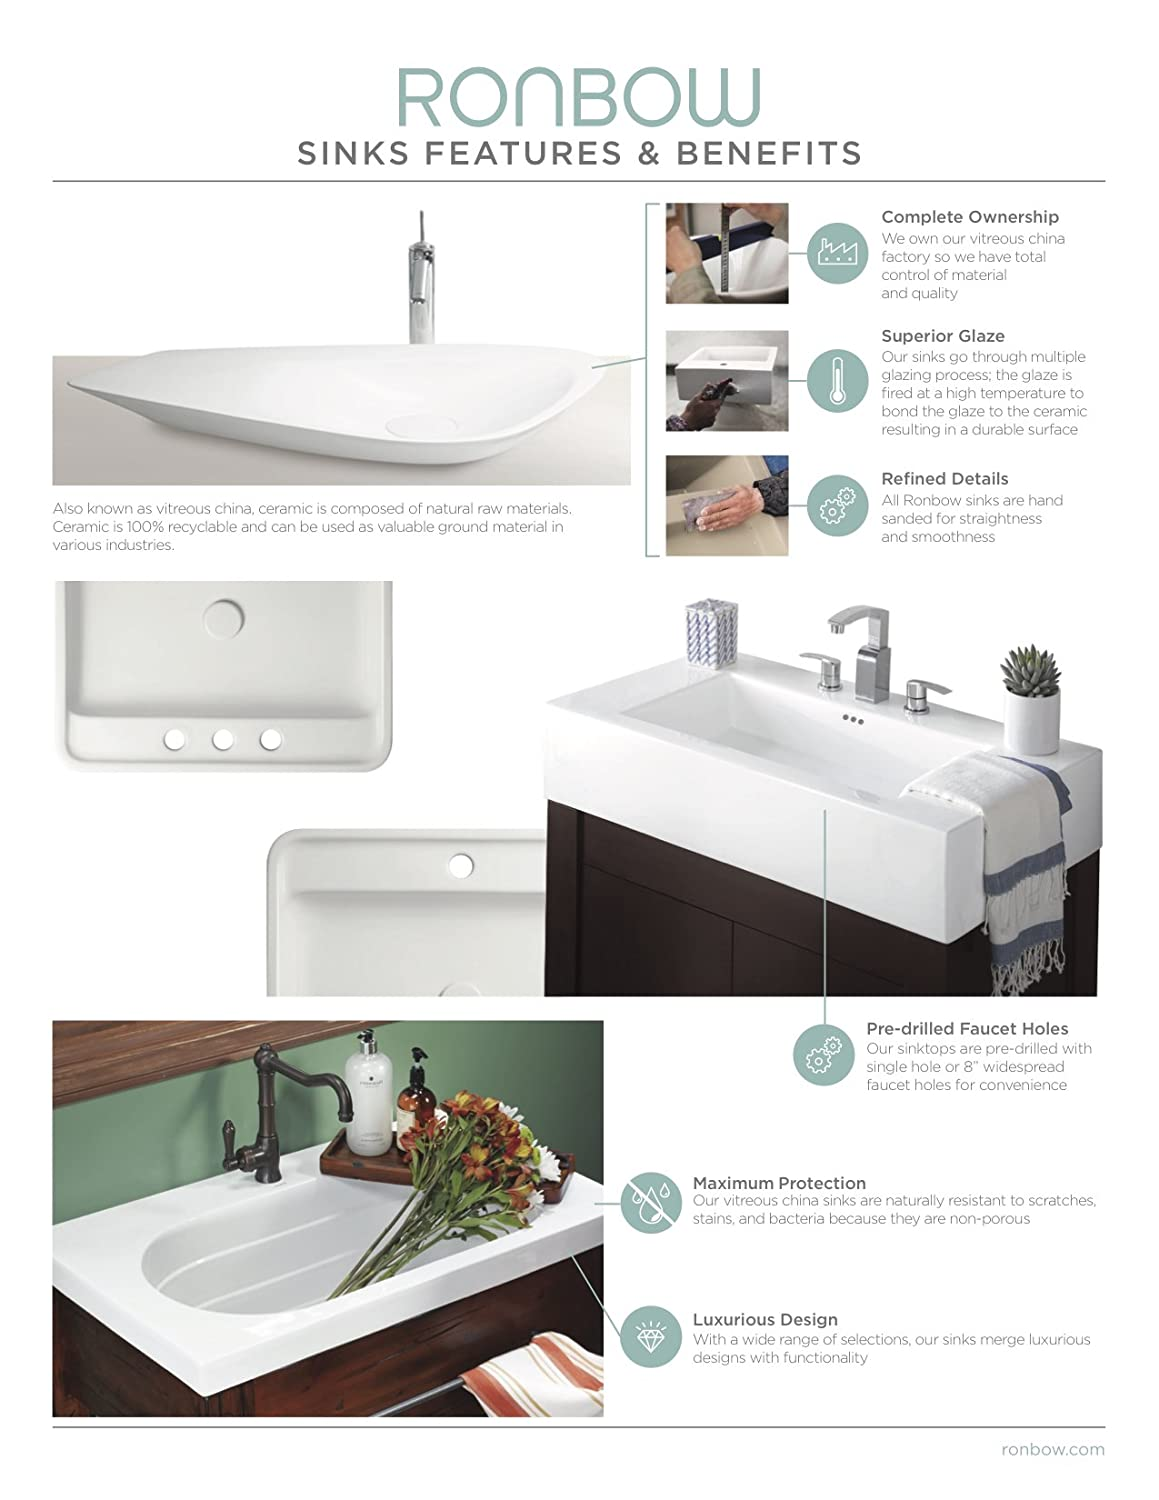 RONBOW Essence 20 Inch Undermount Ceramic Vessel Bathroom Vanity Sink In  Biscuit 200521 BI     Amazon.com